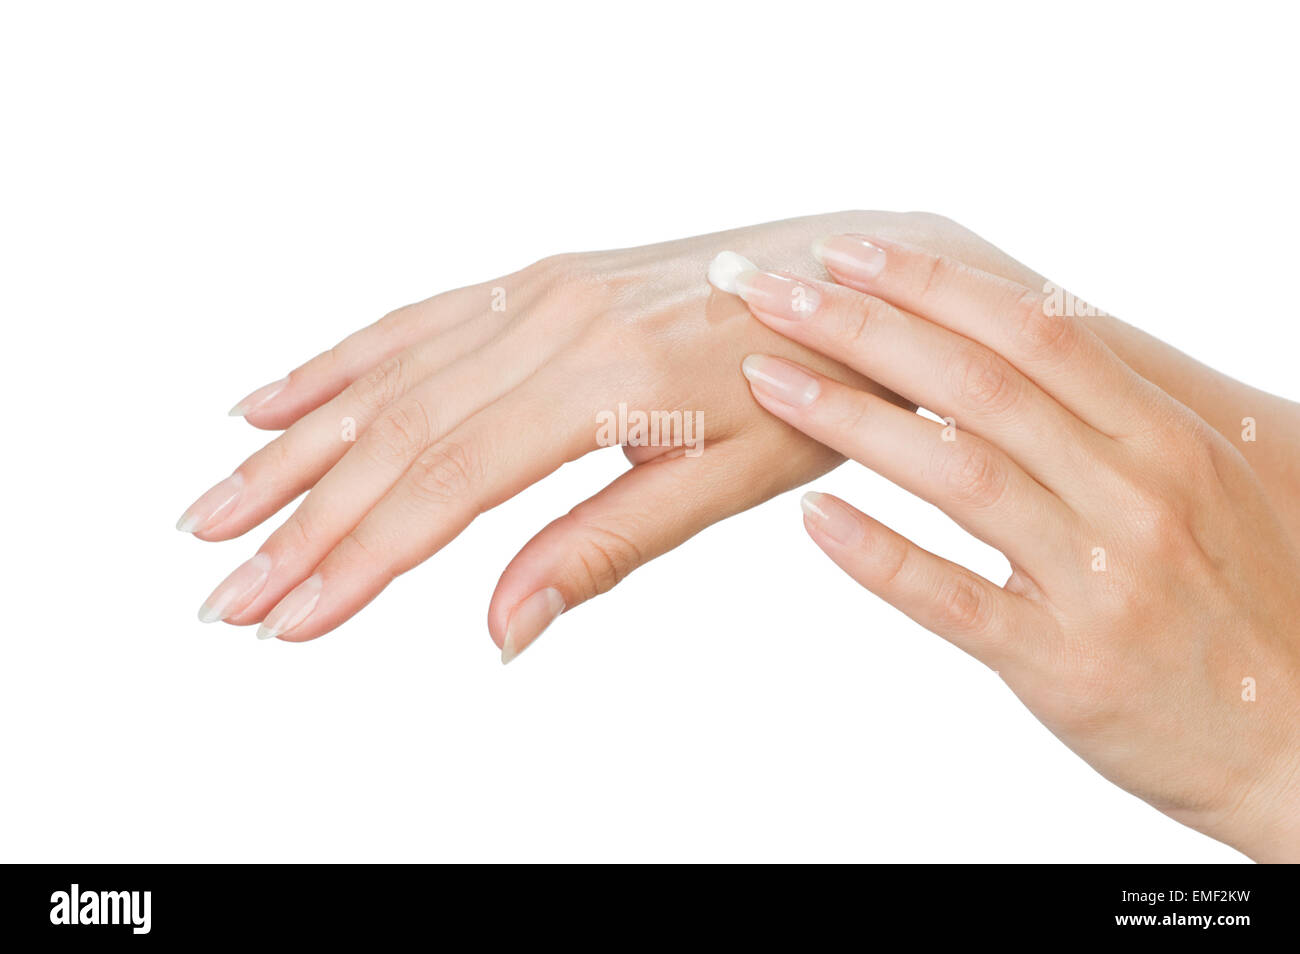 Two woman hands with moisturizer body cream isolated on white - Stock Image